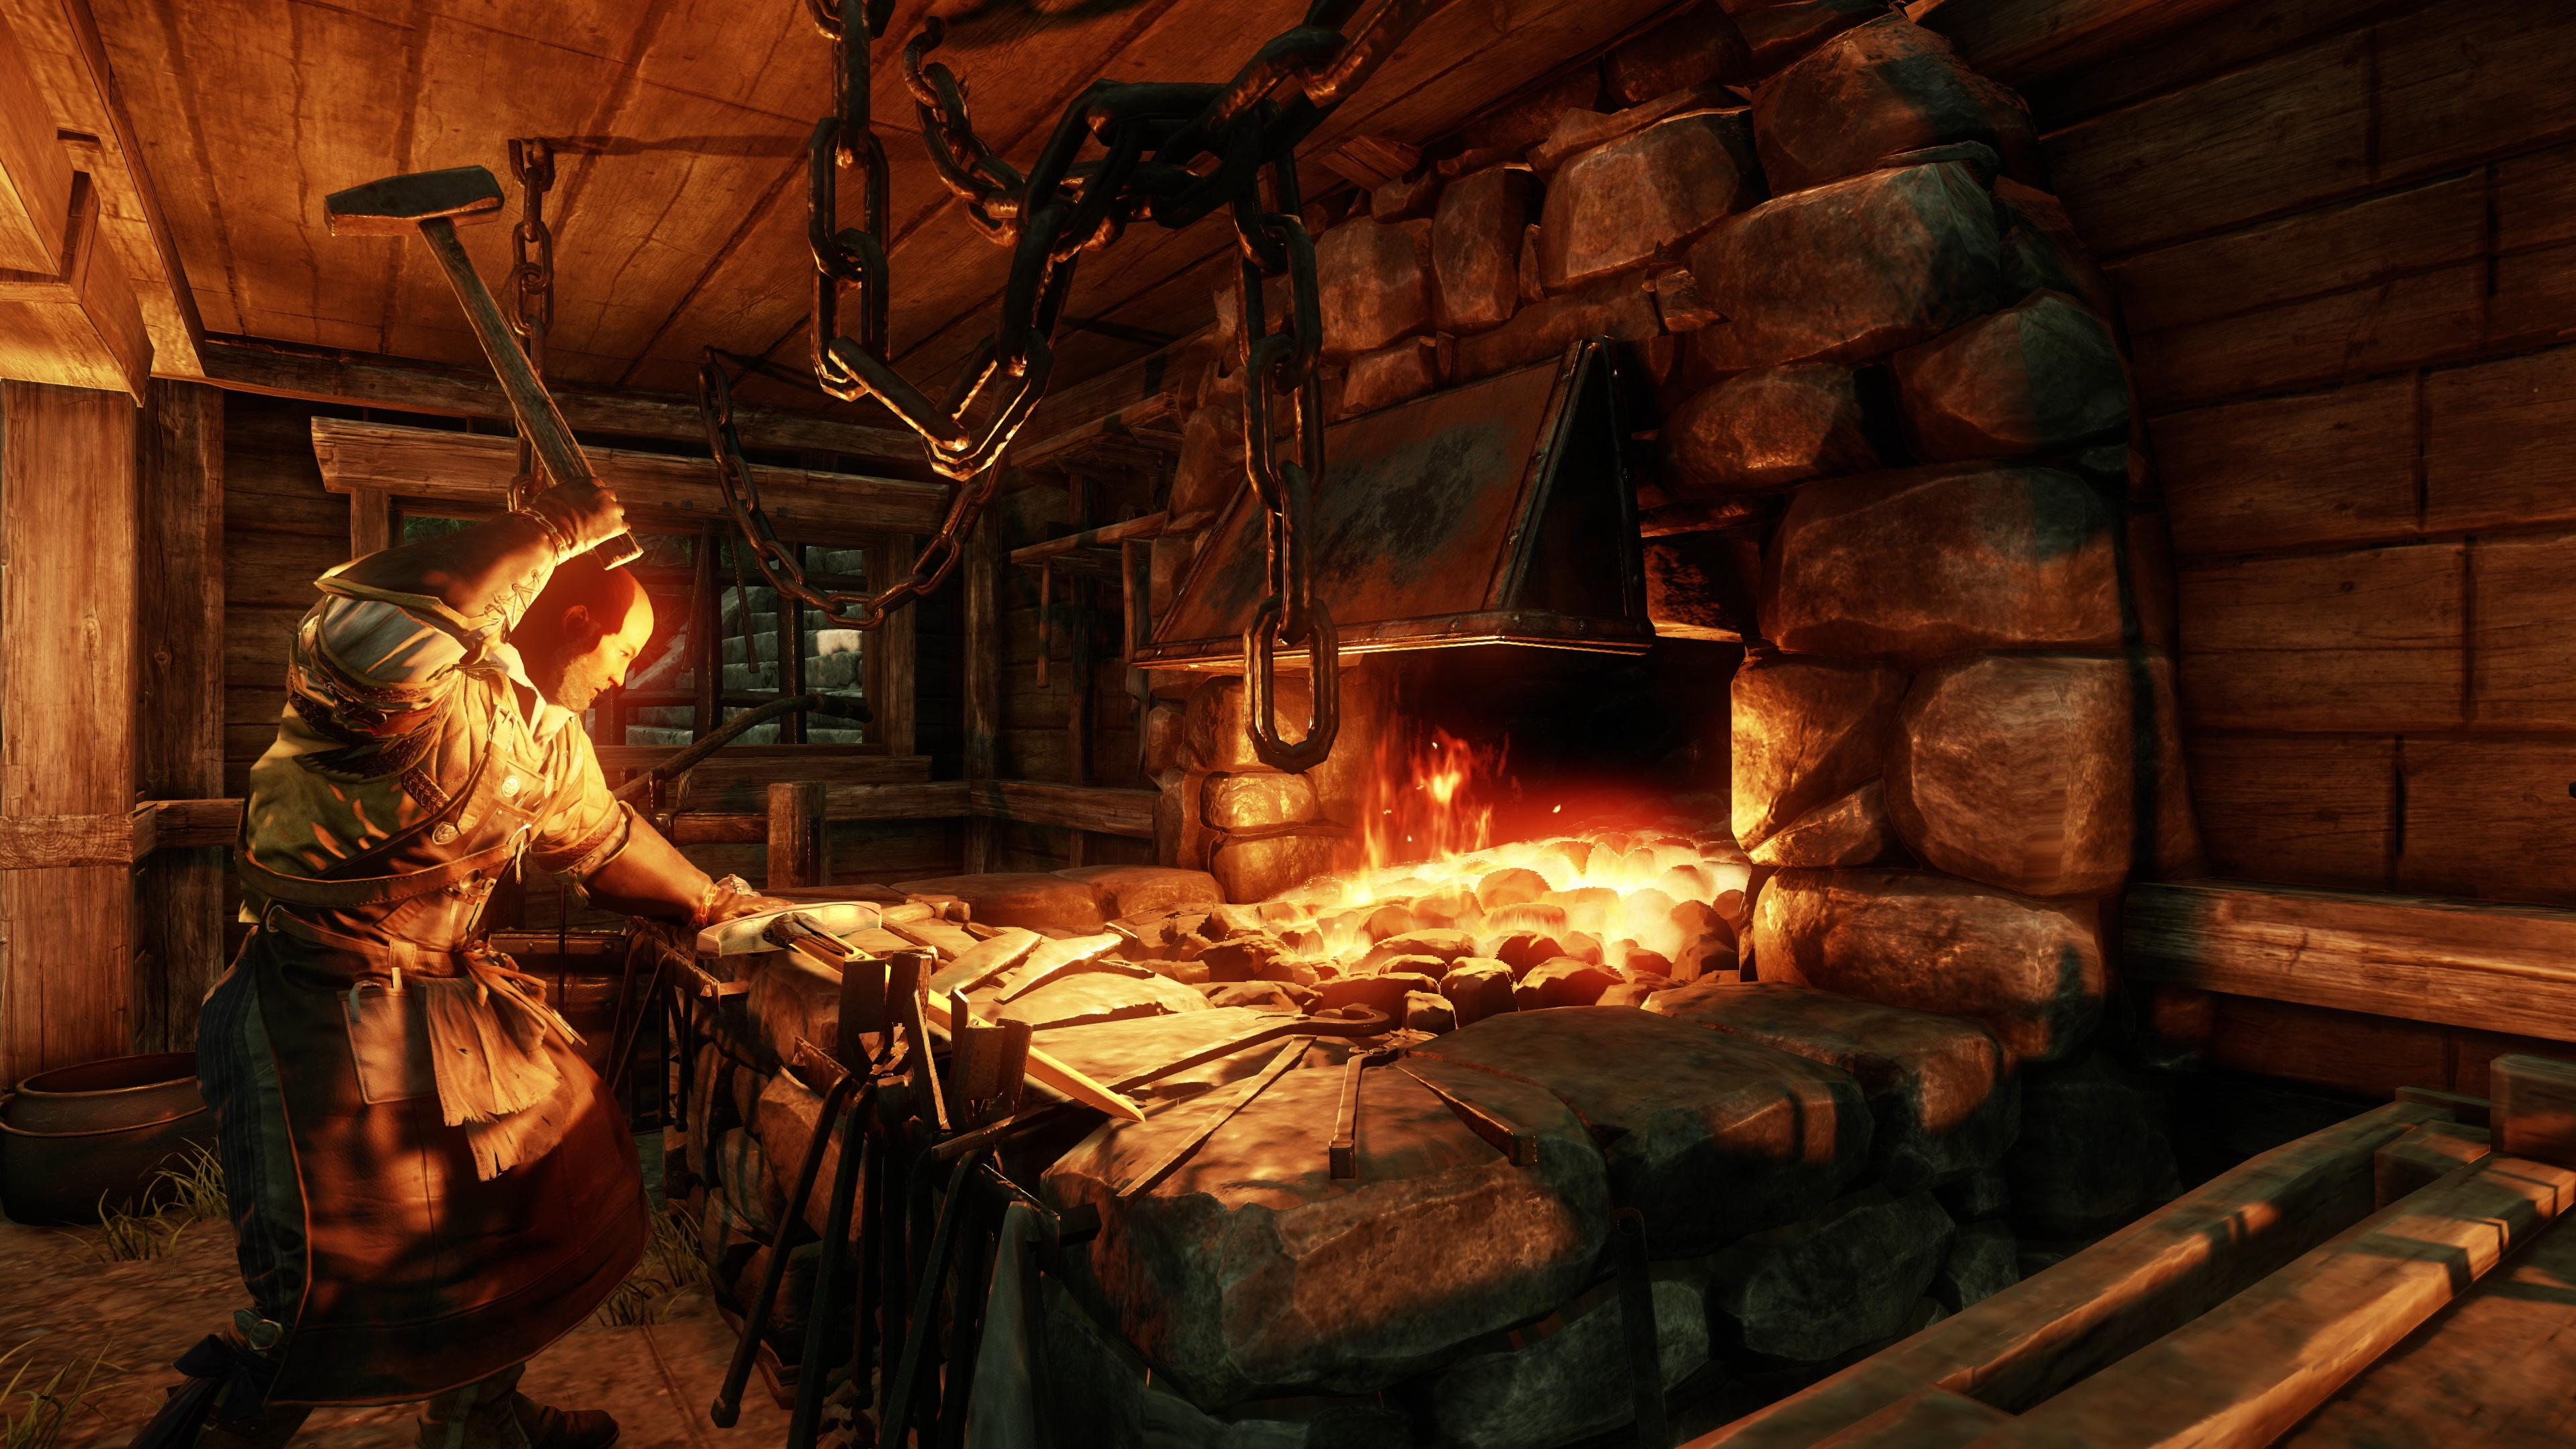 New World lets players craft their own weapons, armor and provisions